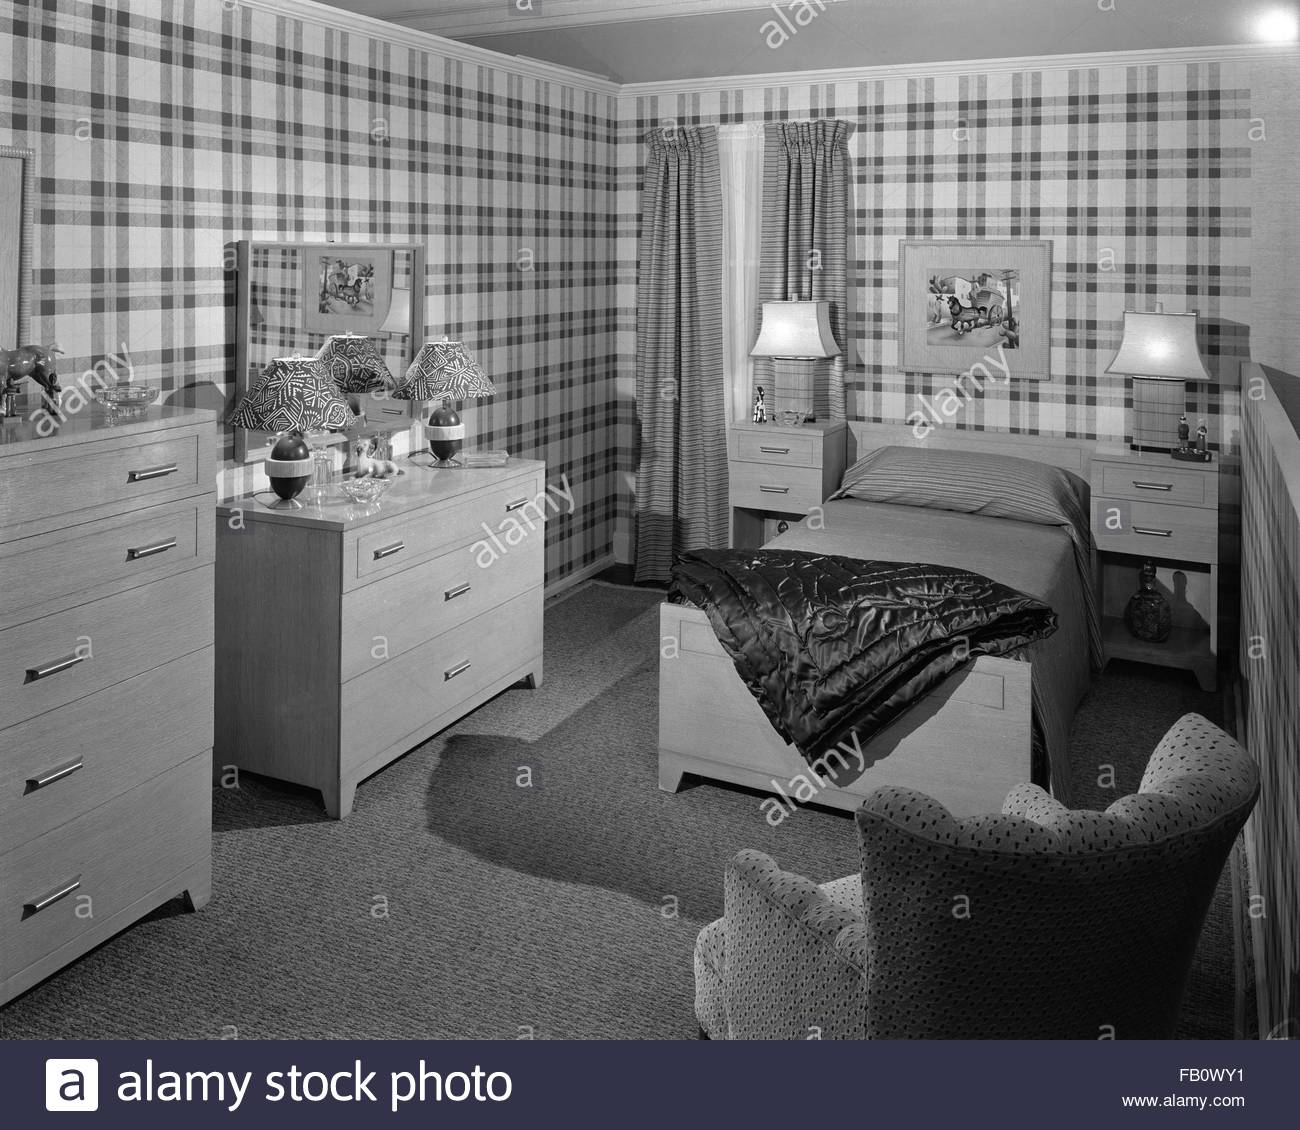 Highway 42 section of Marshall Field and Company furniture department, 1943 Feb. 15. Boys bedroom with plaid wallpaper. Stock Photo